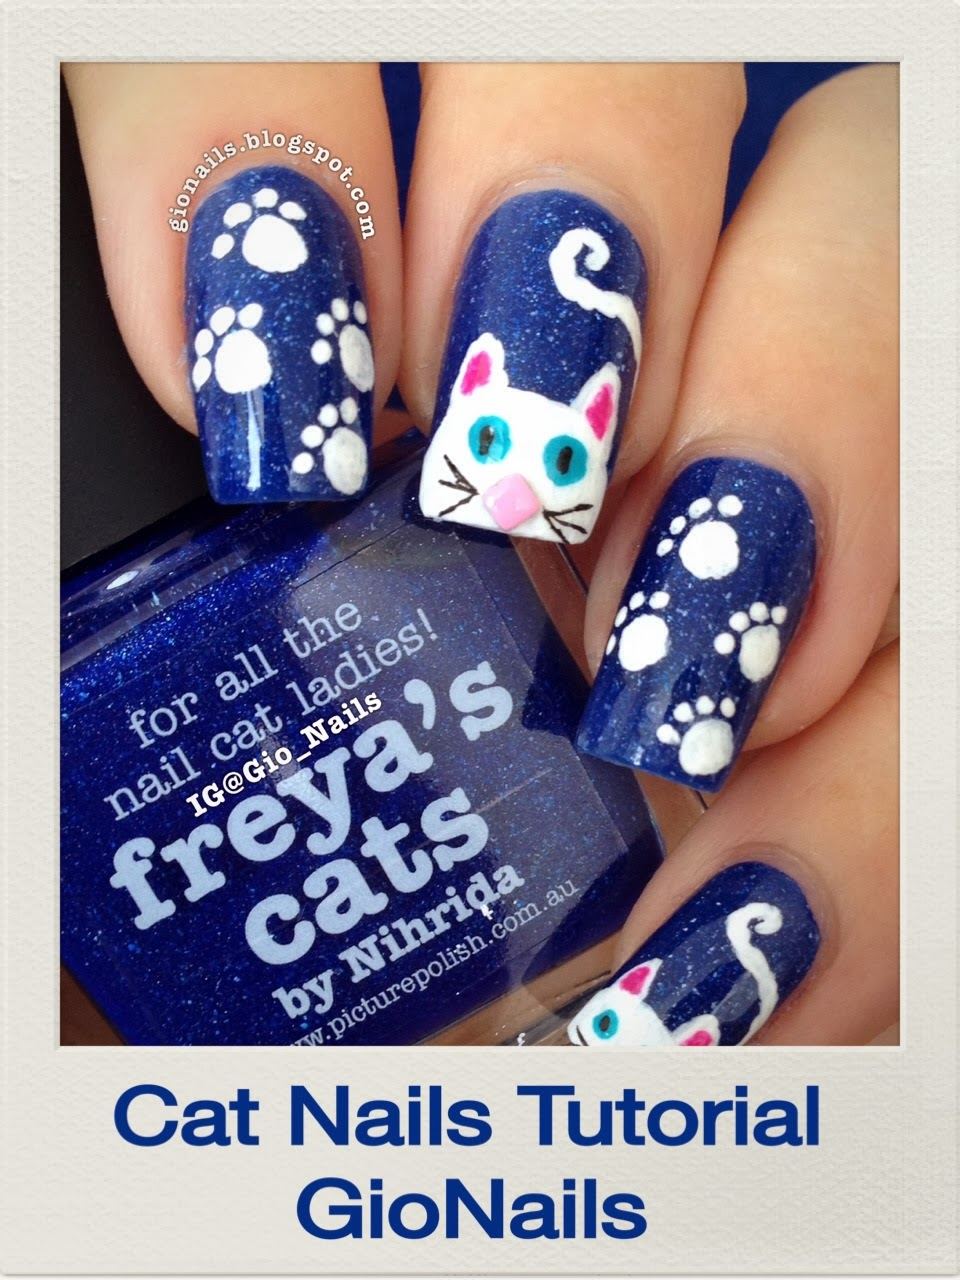 http://gionails.blogspot.be/2014/03/tutorial-cat-nails.html